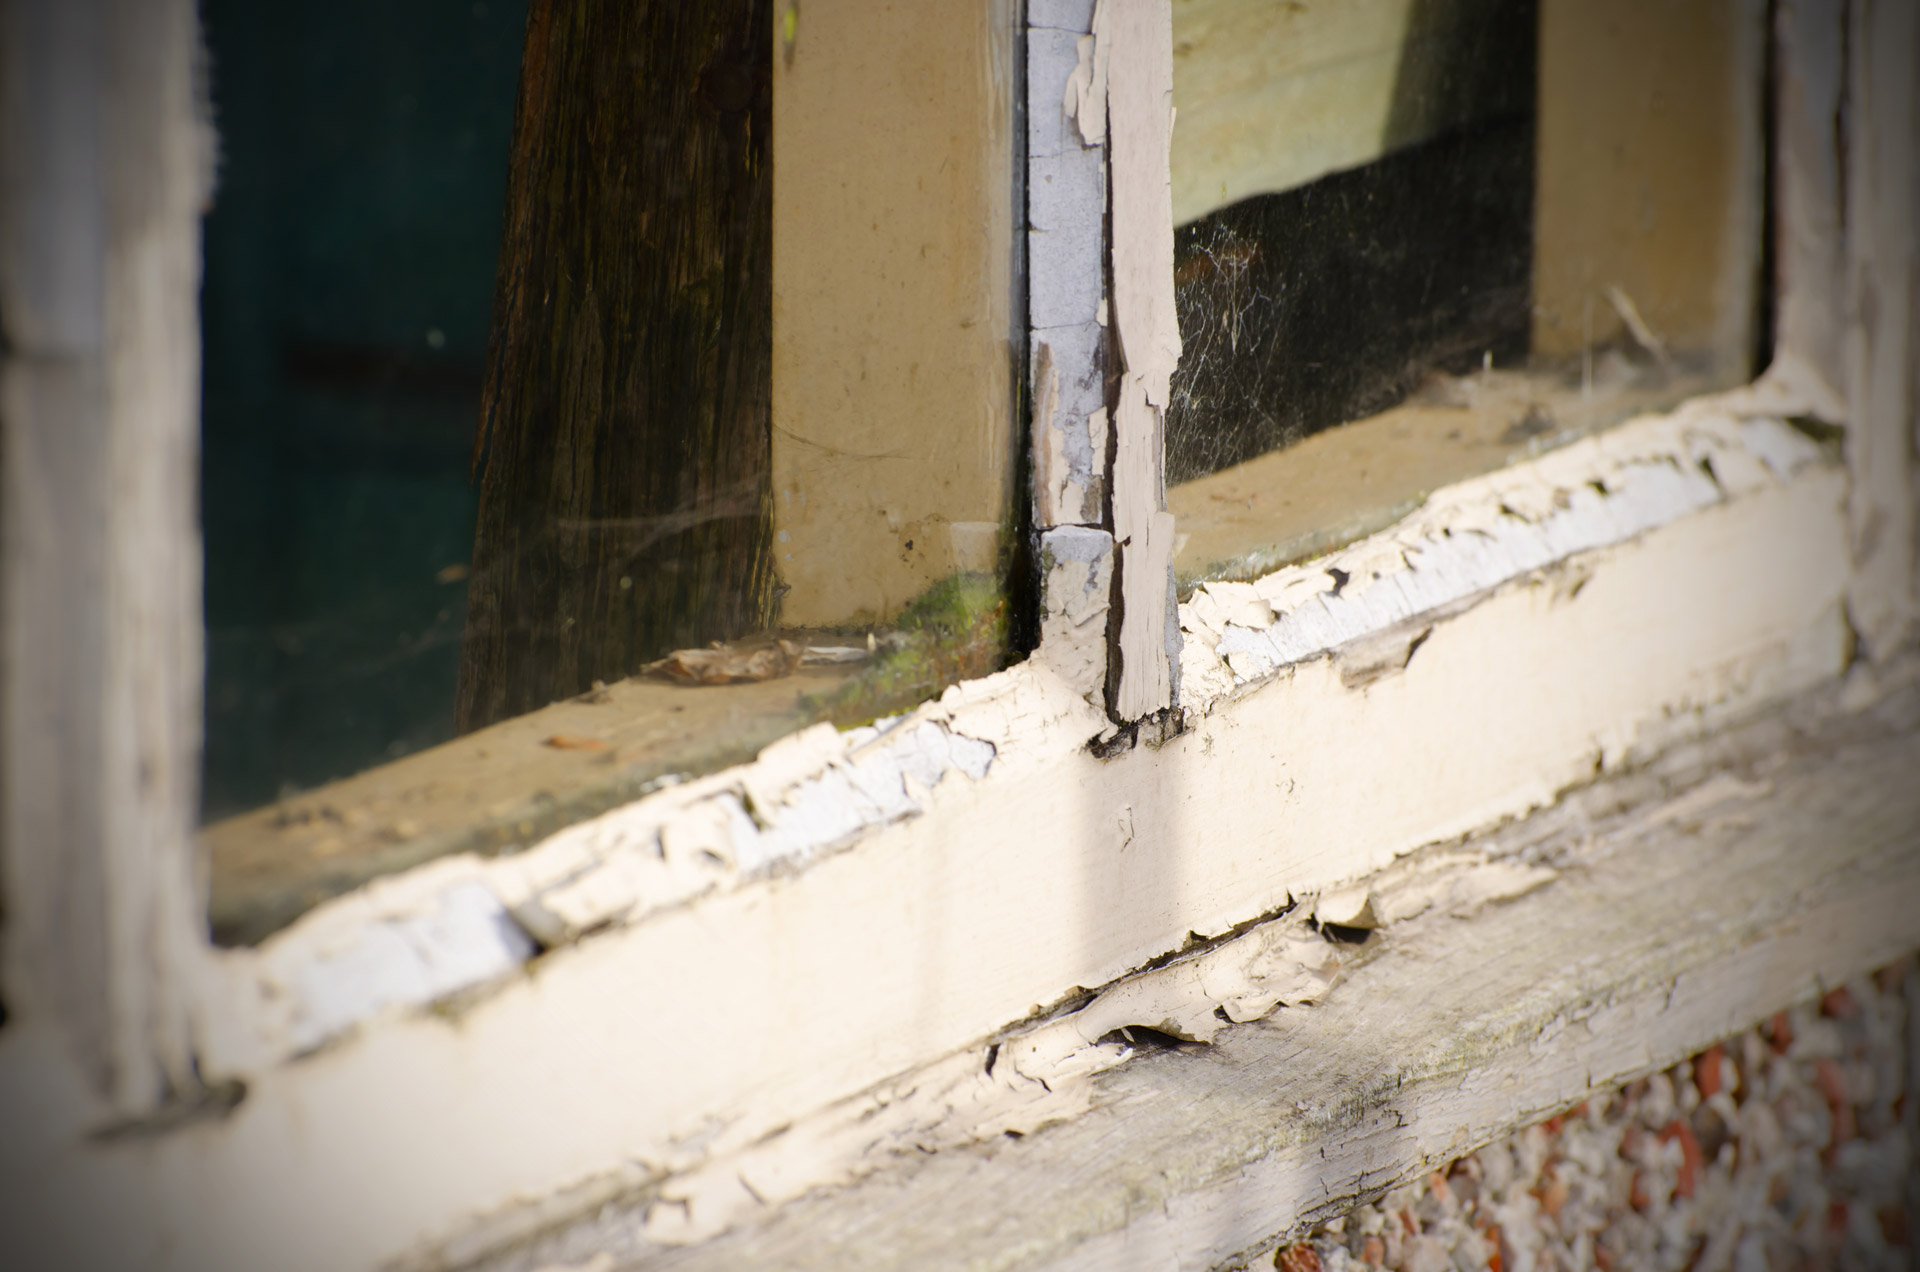 Old windows with peeling paint